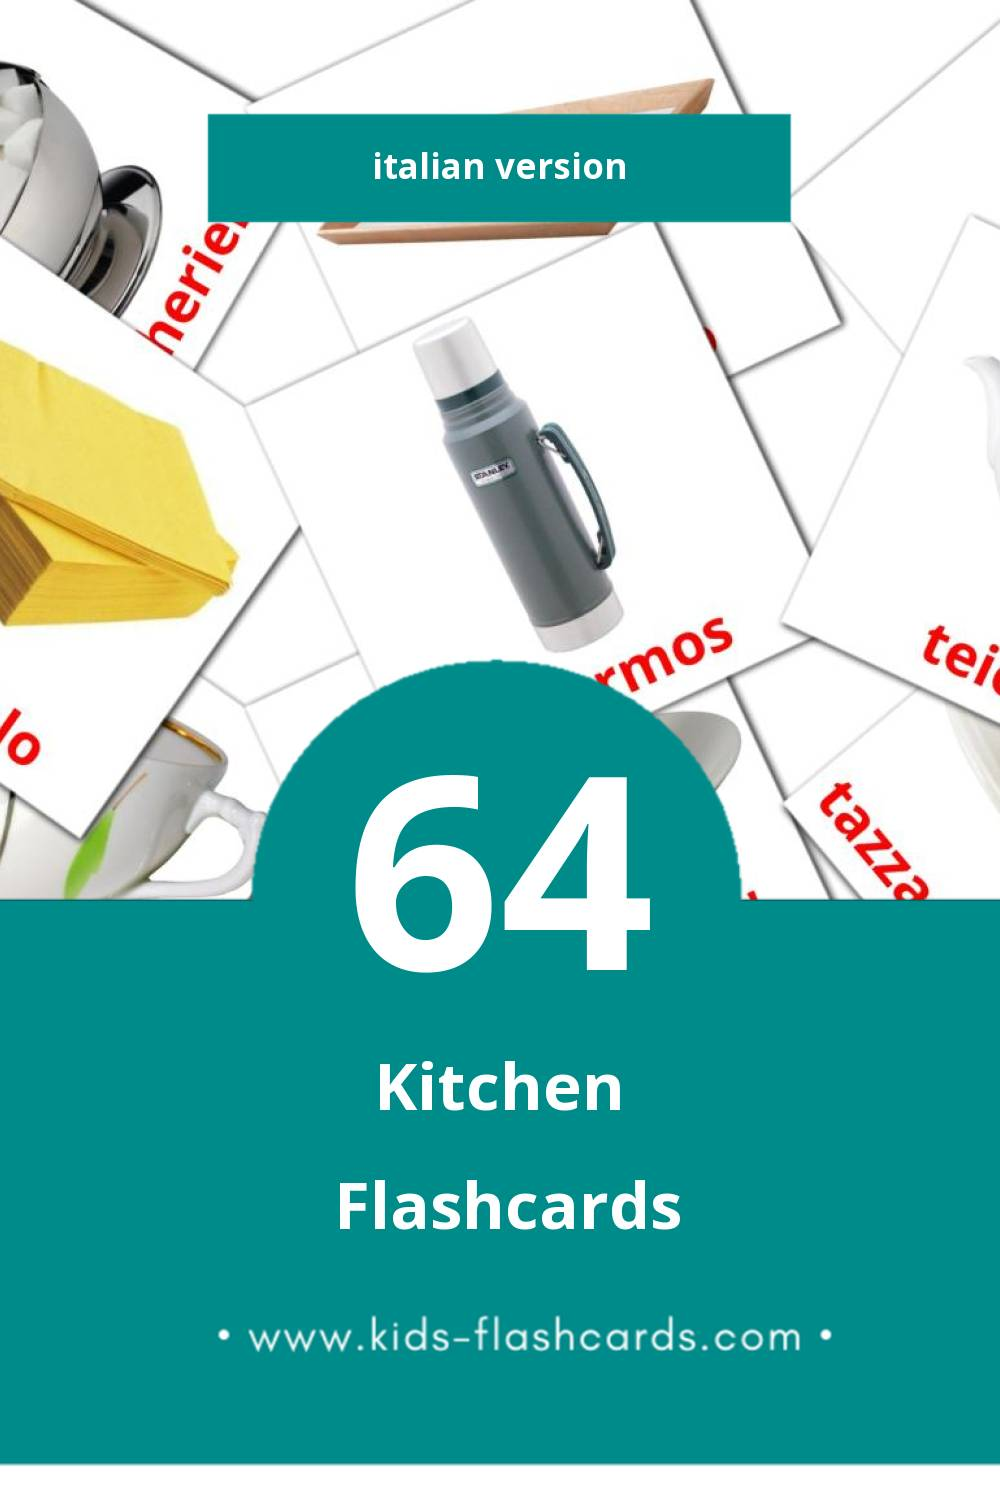 Visual Cucina Flashcards for Toddlers (29 cards in Italian)